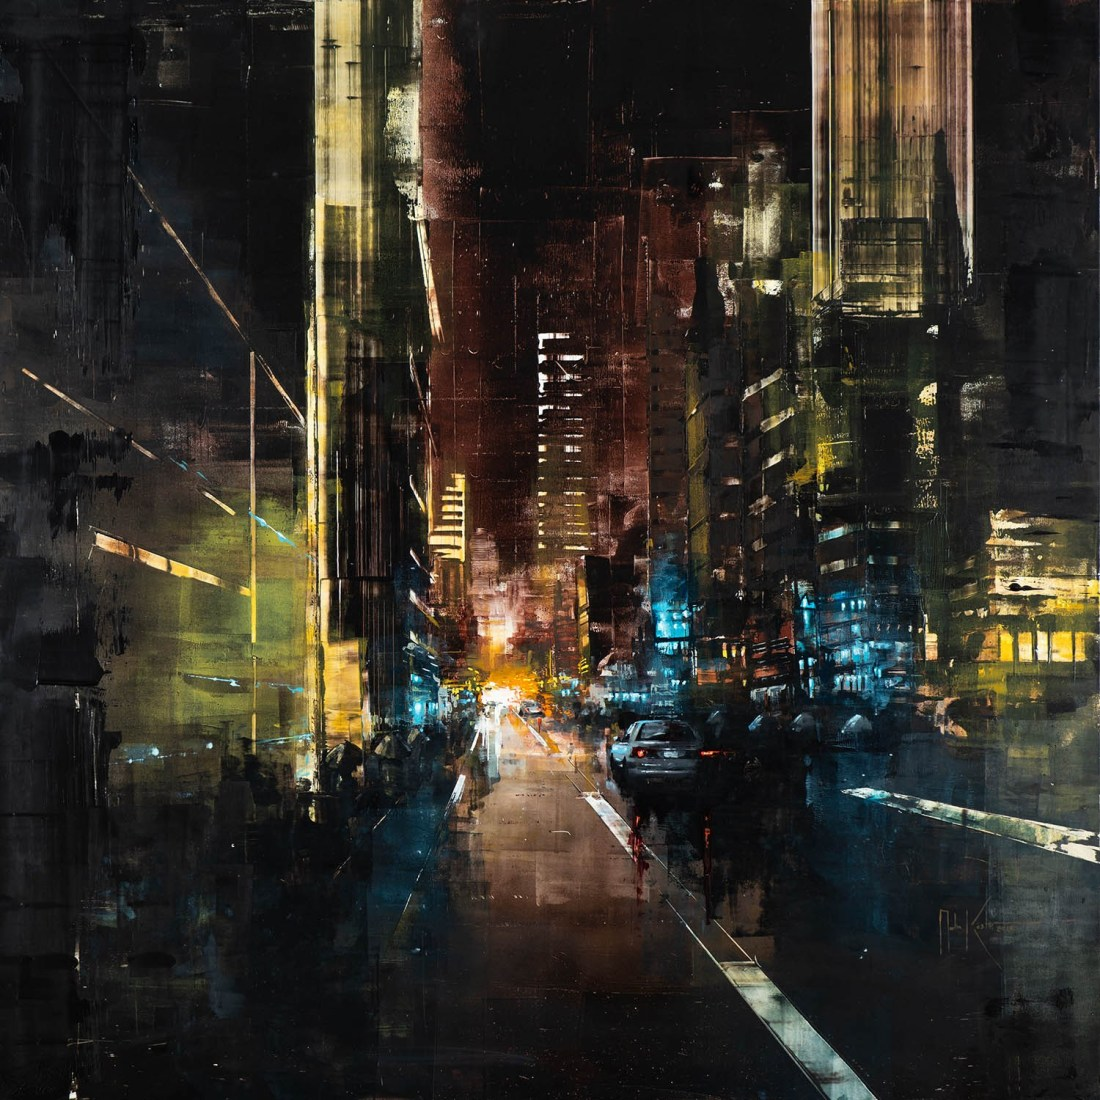 Martin Köster, Hong Kong late night, Oil on panel, Unikat, 2019, 100 x 100 cm